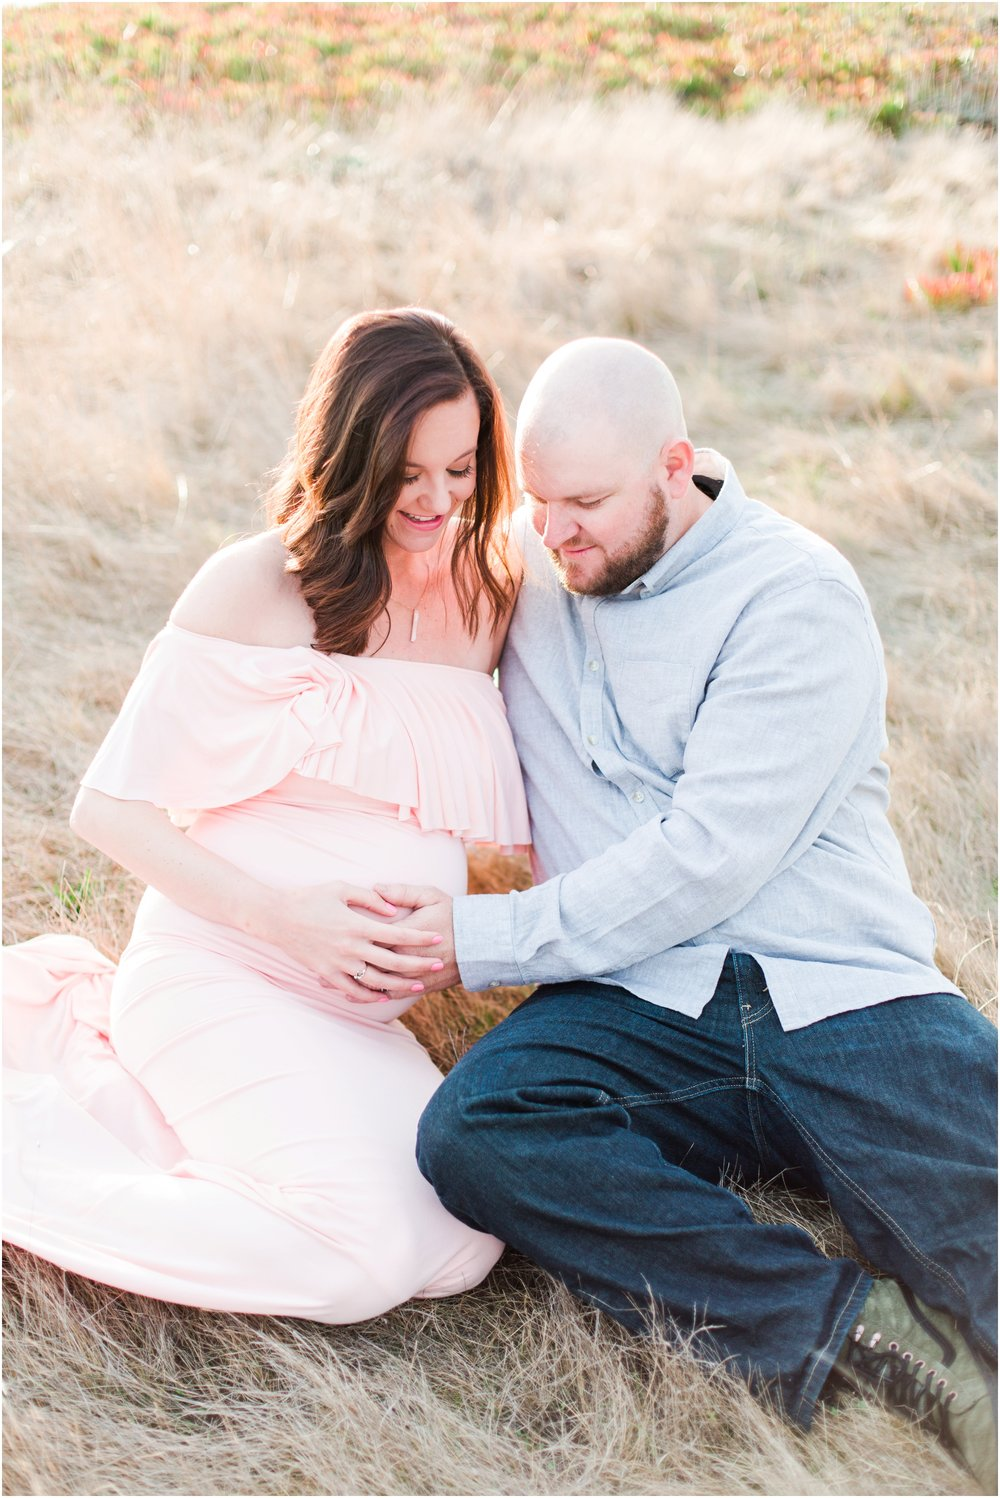 Half Moon Bay maternity pictures by Briana Calderon Photography_0519.jpg